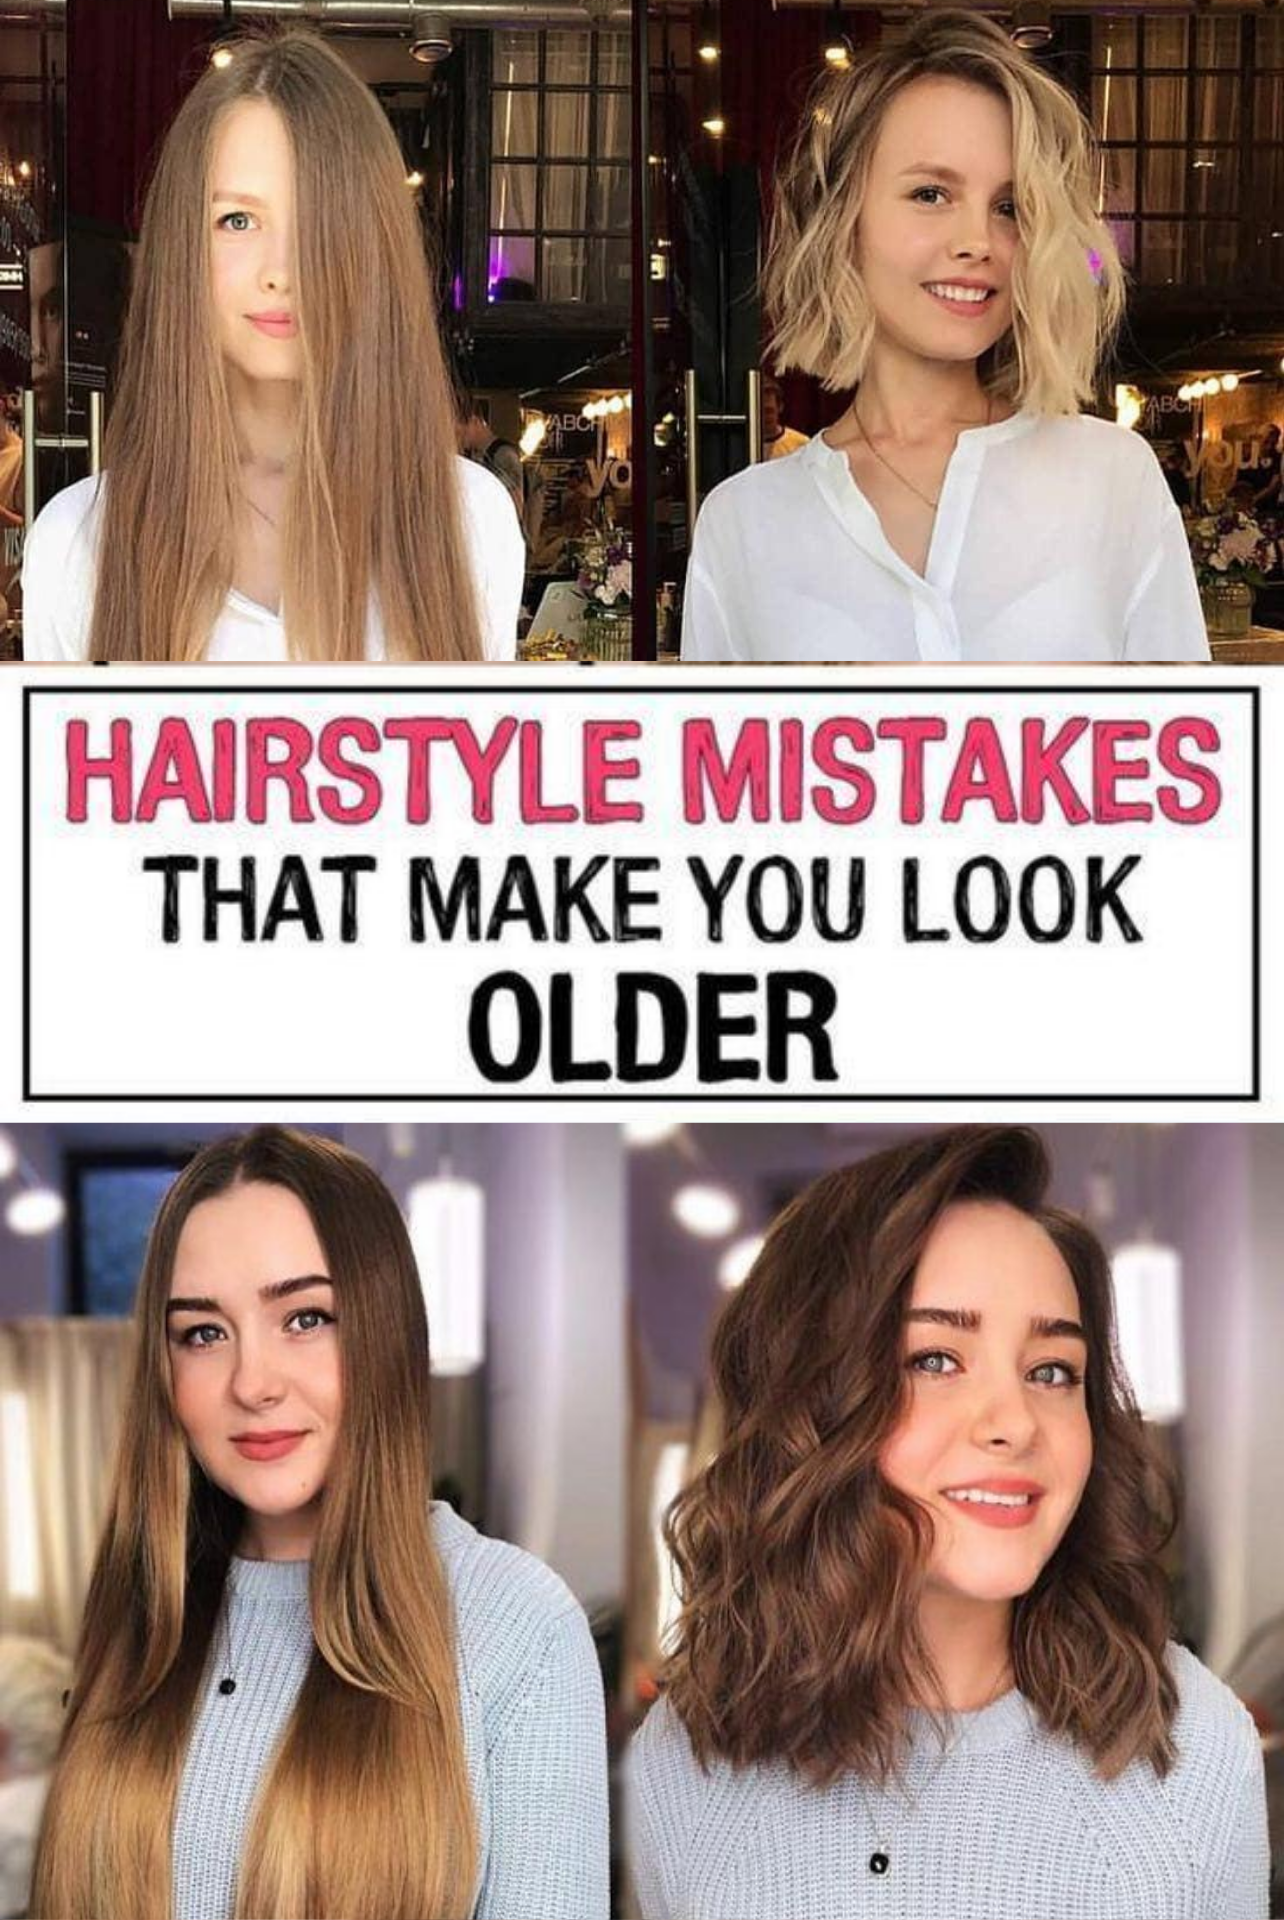 11 Hairstyle Mistakes That Are Aging You In 2020 Hair Mistakes Mom Hairstyles Hairstyle